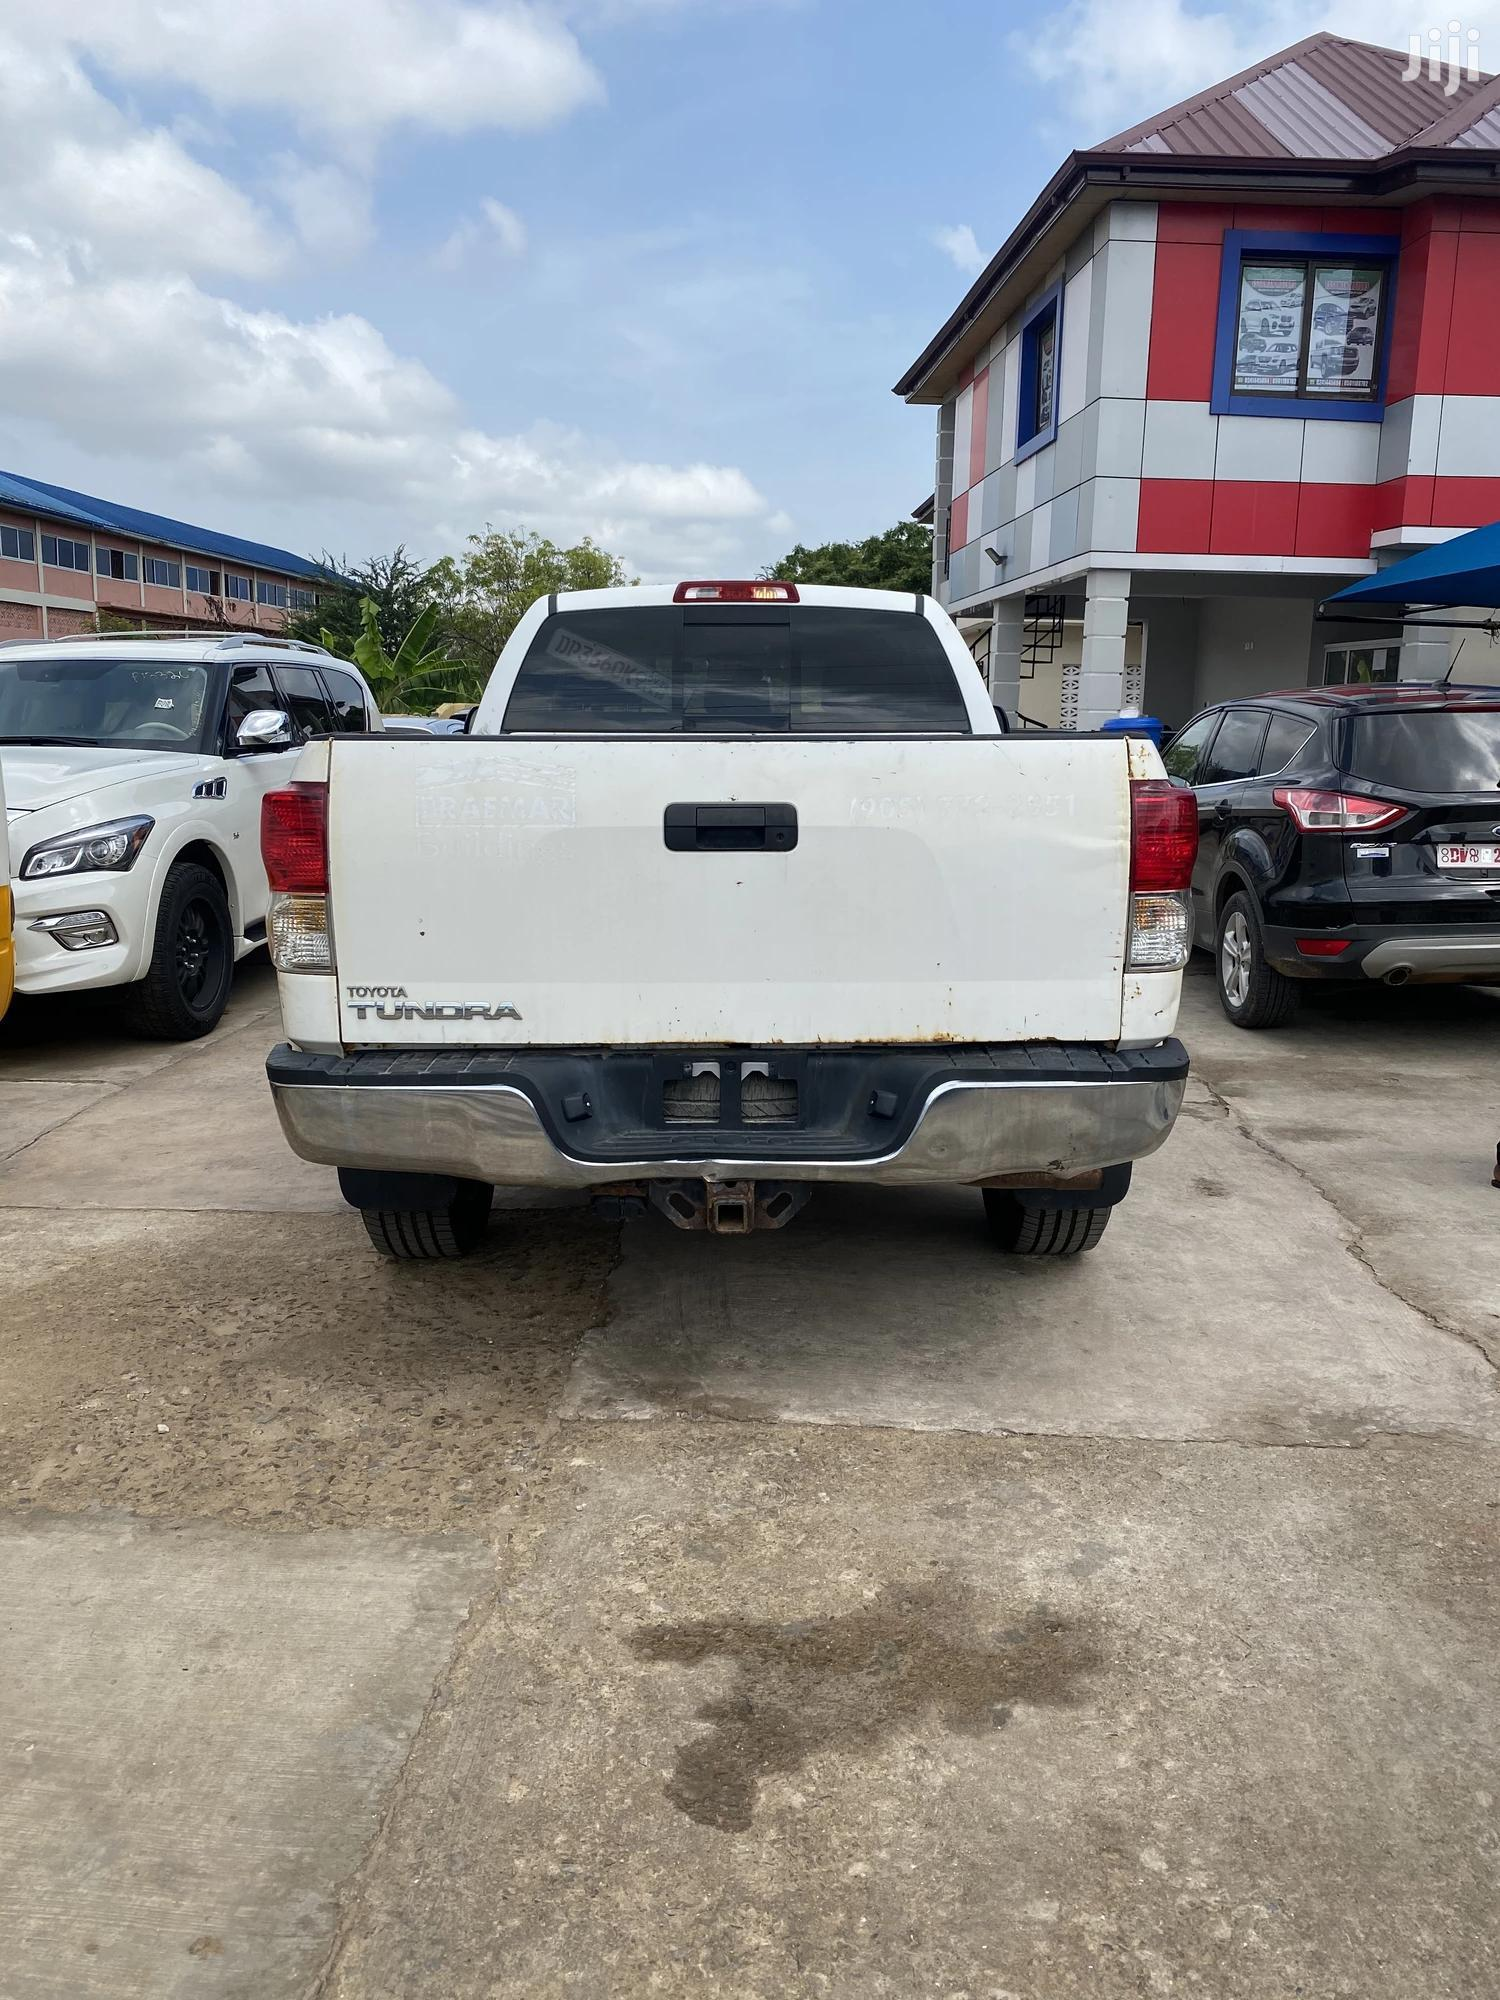 Toyota Tundra 2011 Double Cab 4x4 Limited White | Cars for sale in Accra Metropolitan, Greater Accra, Ghana